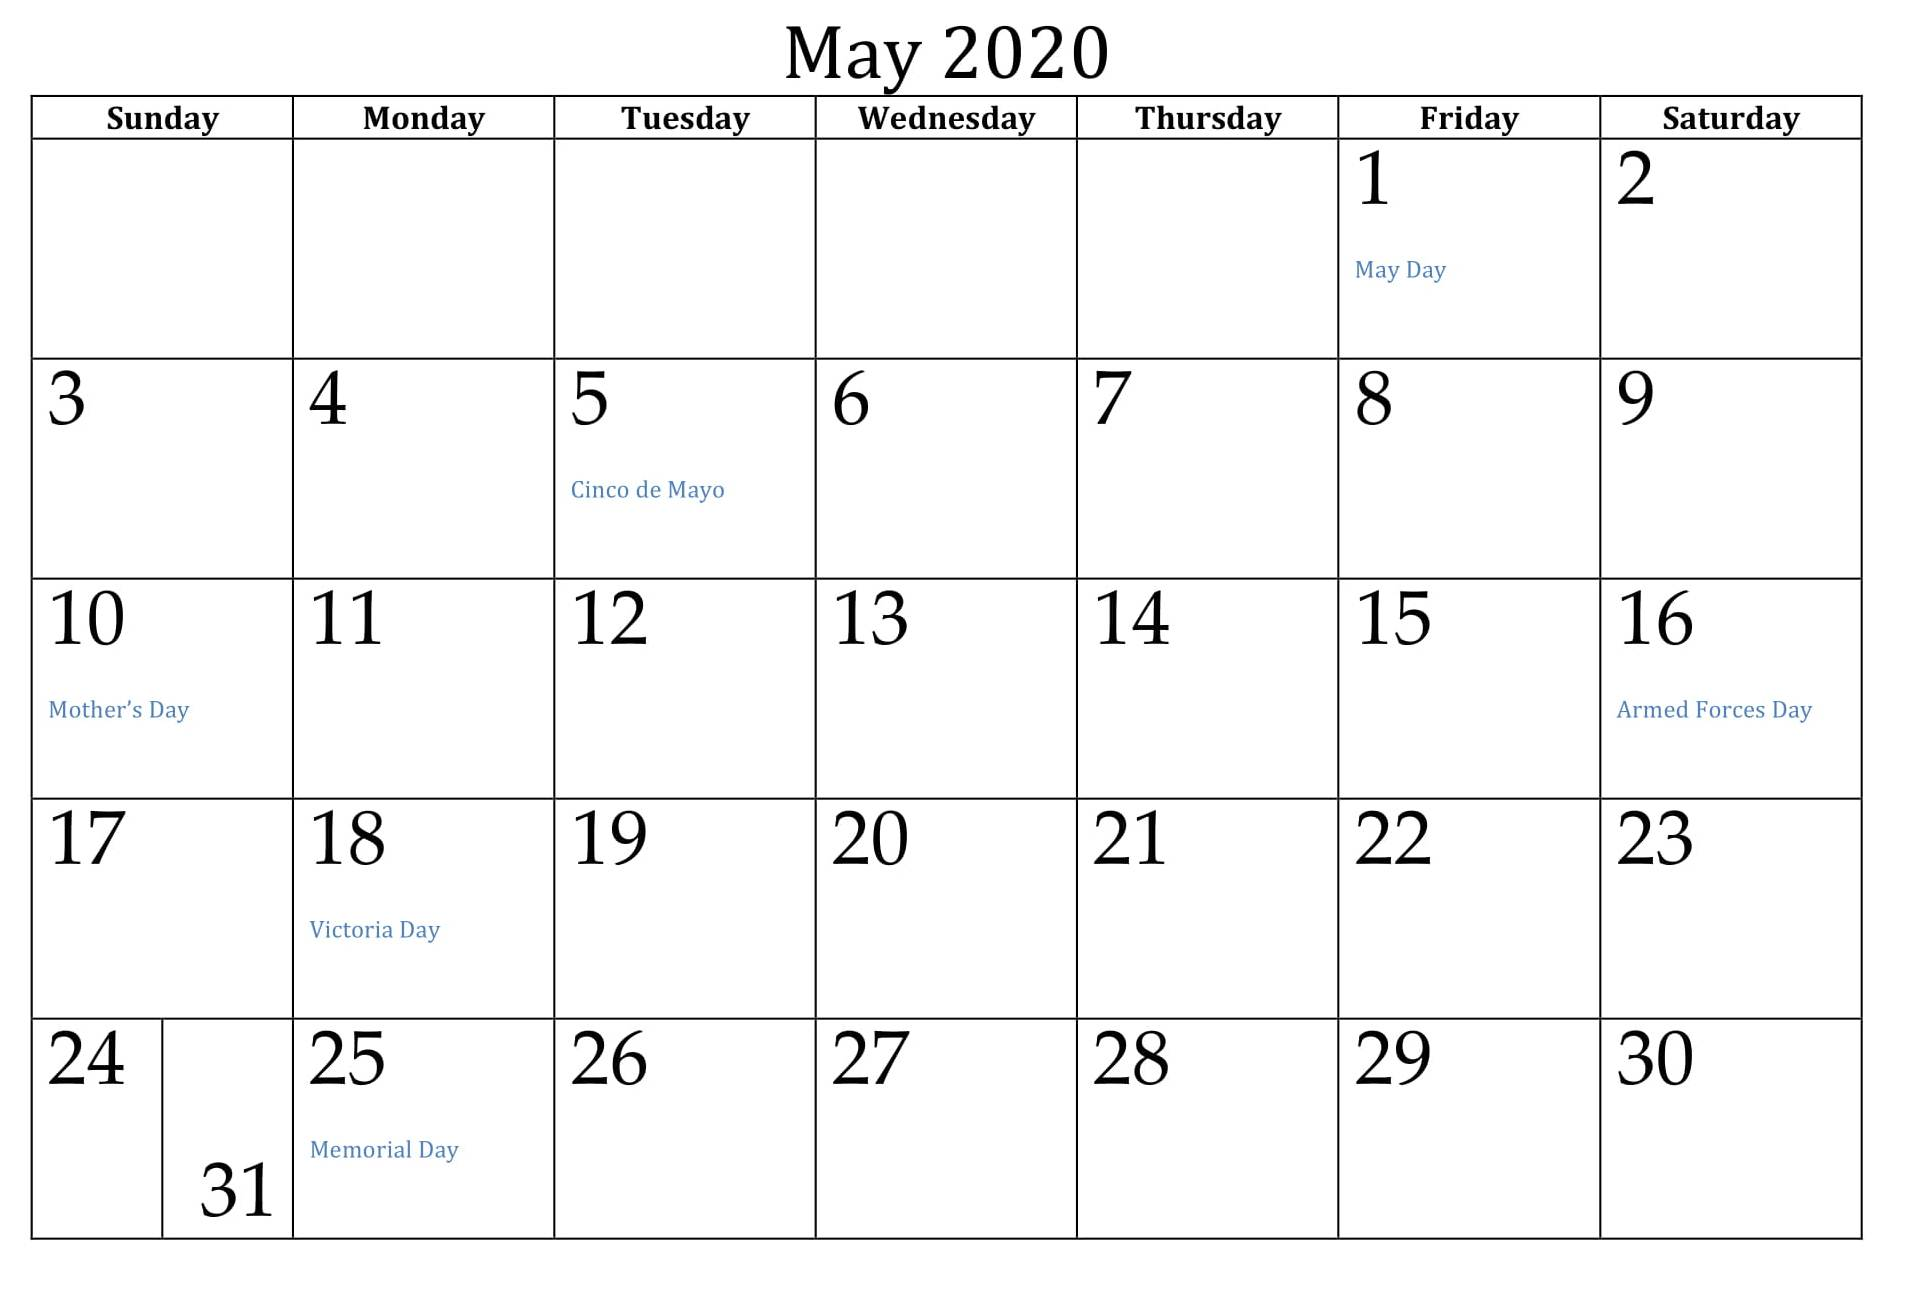 May 2020 Calendar US Public Holidays